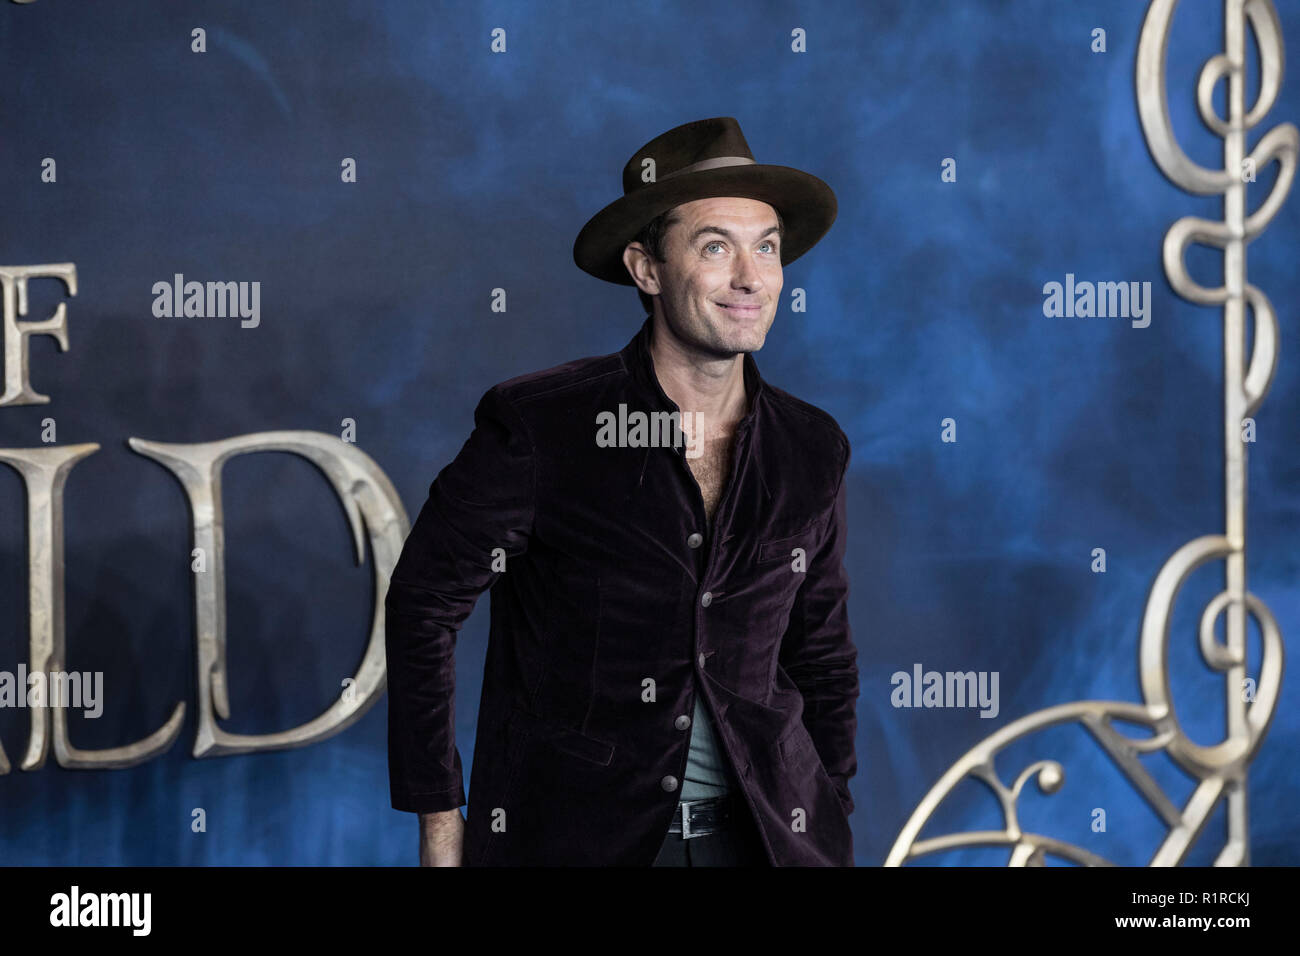 Londres, Royaume-Uni. 13Th Nov, 2018. Les Animaux Fantastiques:Les crimes de Grindelwald film premiere, Leicester Square, London, UK Crédit : Jeff Gilbert/Alamy Live News Crédit : Jeff Gilbert/Alamy Live News Banque D'Images